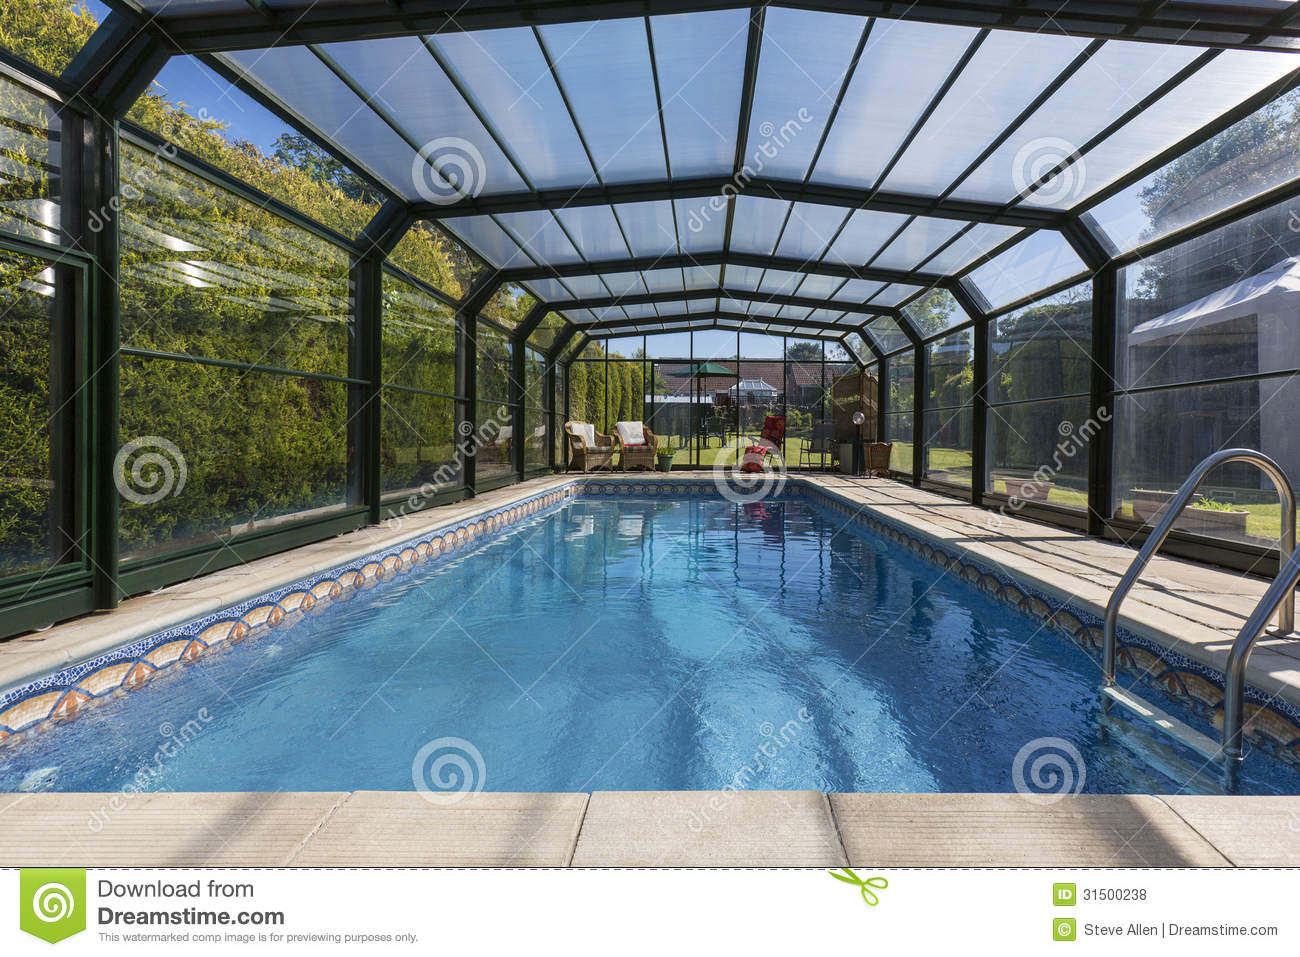 Grando Poolabdeckung Private Heated Swimming Pool And Enclosure Royalty Free